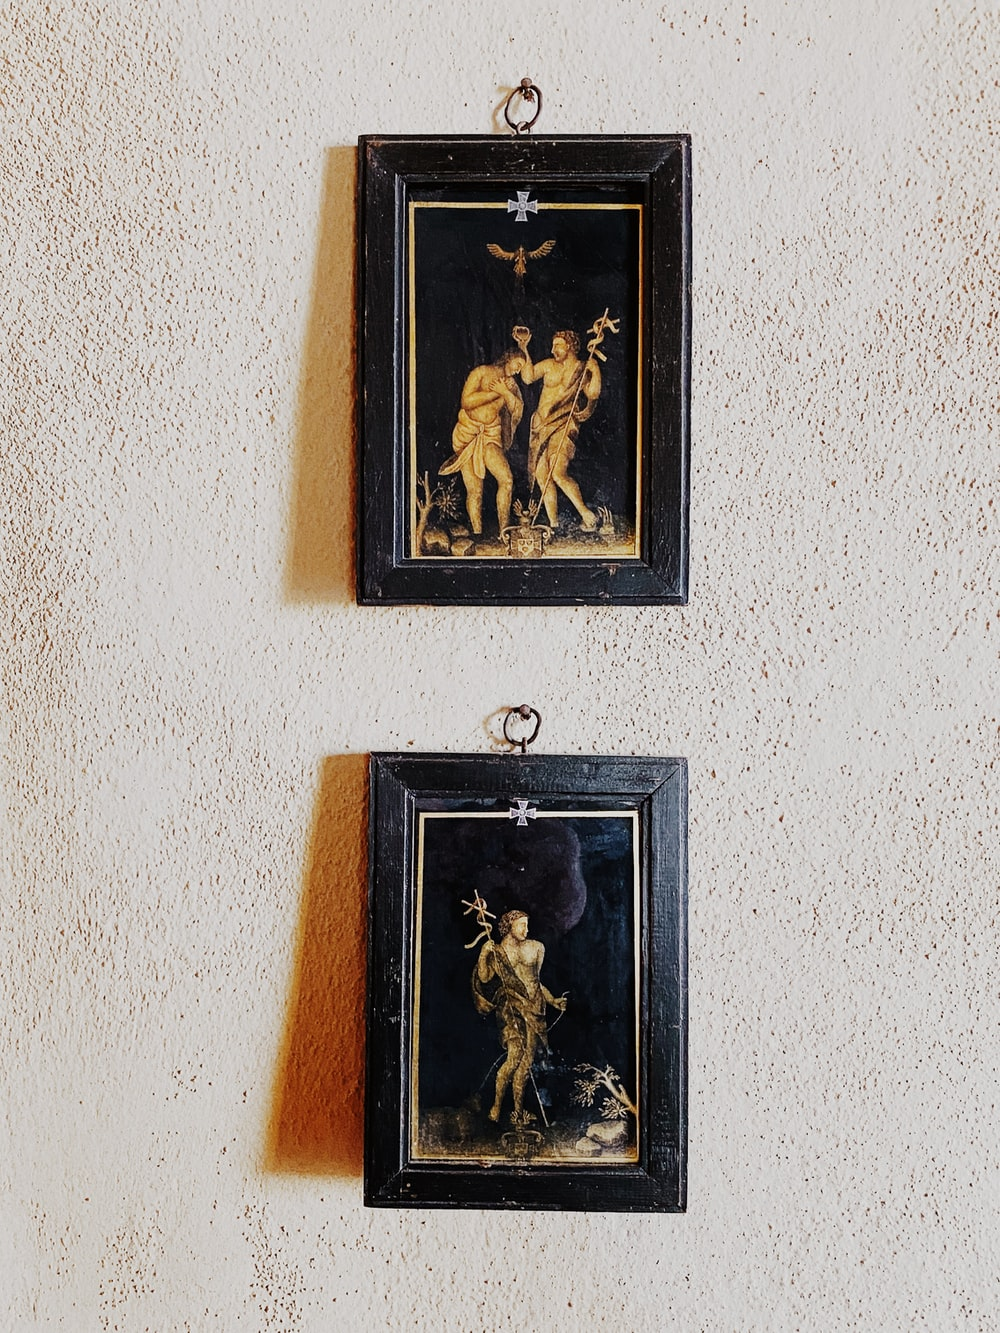 brown wooden framed religious painting